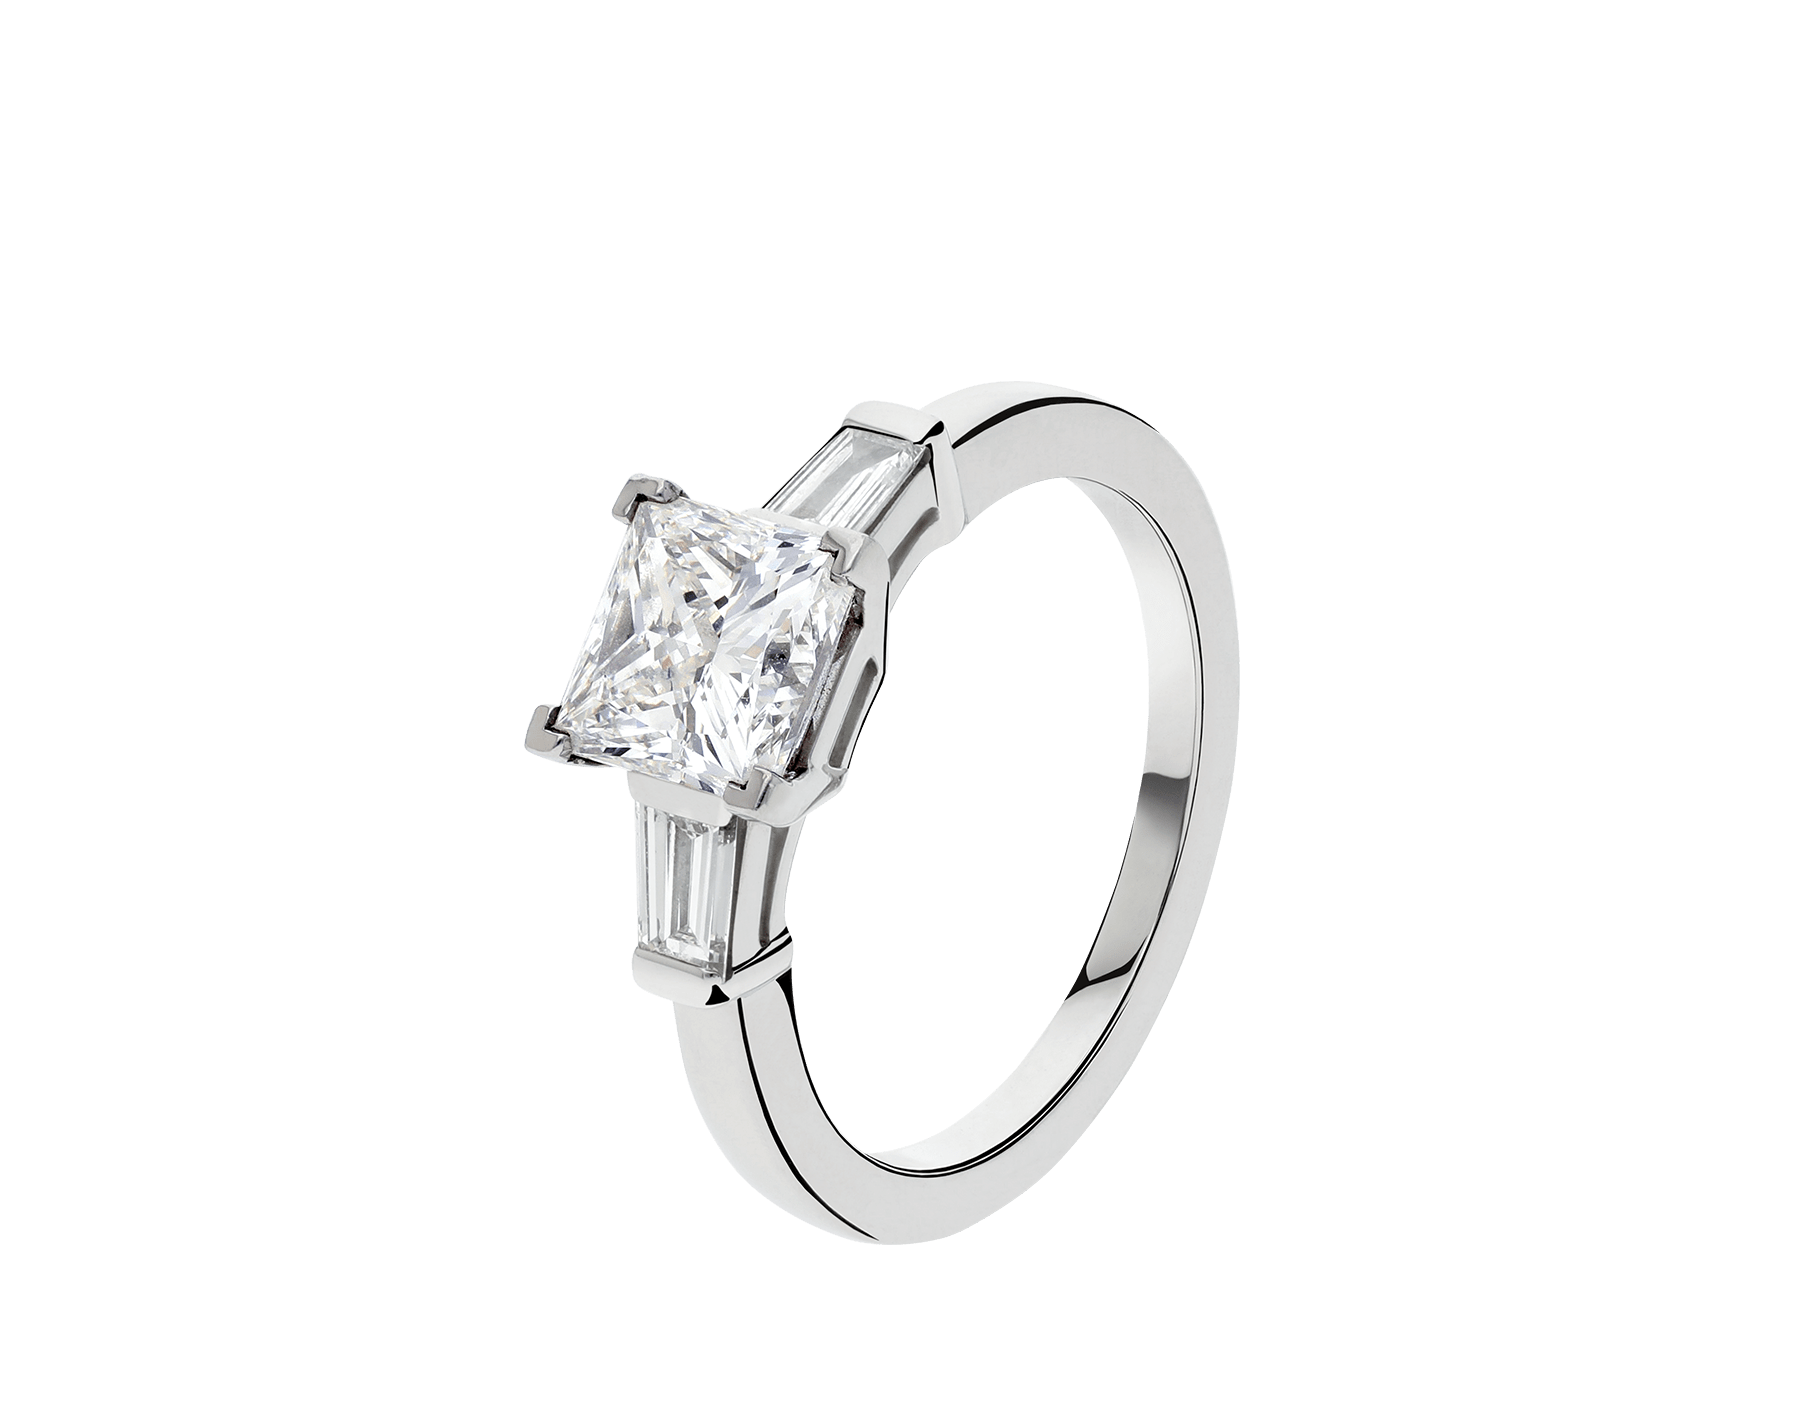 Griffe solitaire ring in platinum with princess cut diamond and two side diamonds. Available in 1 ct. A classic setting that allows the beauty and the pureness of the solitaire diamond to assert itself. 338560 image 1